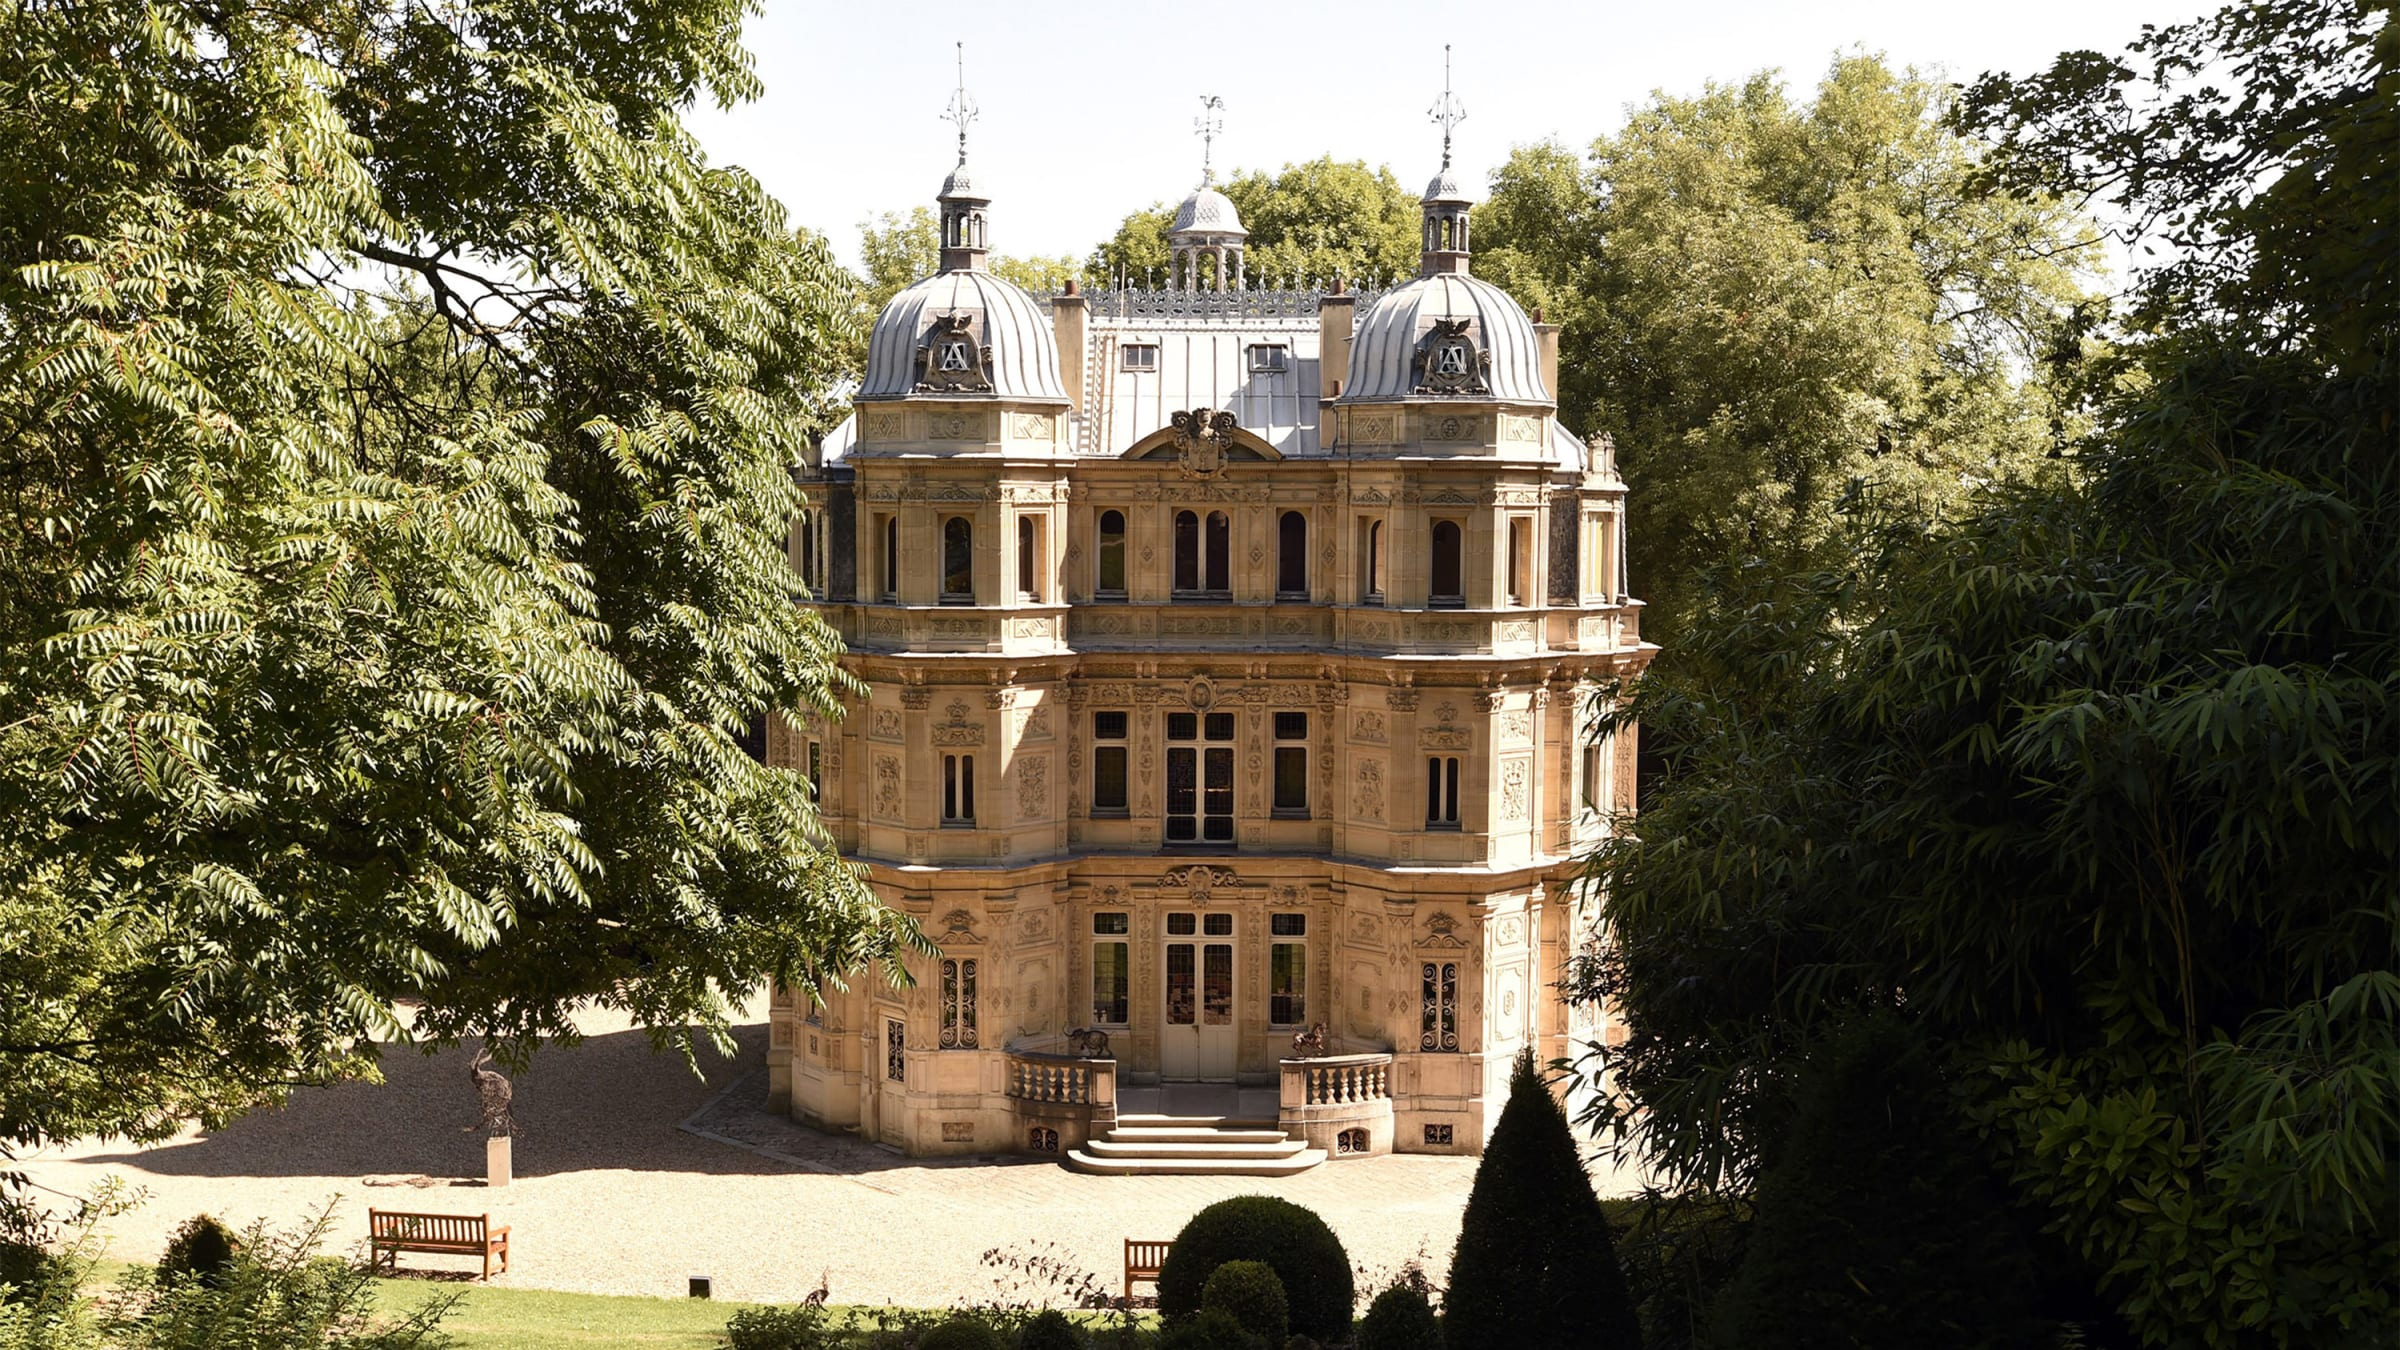 The Gaudy Pleasure Palace That Wrecked Alexandre Dumas